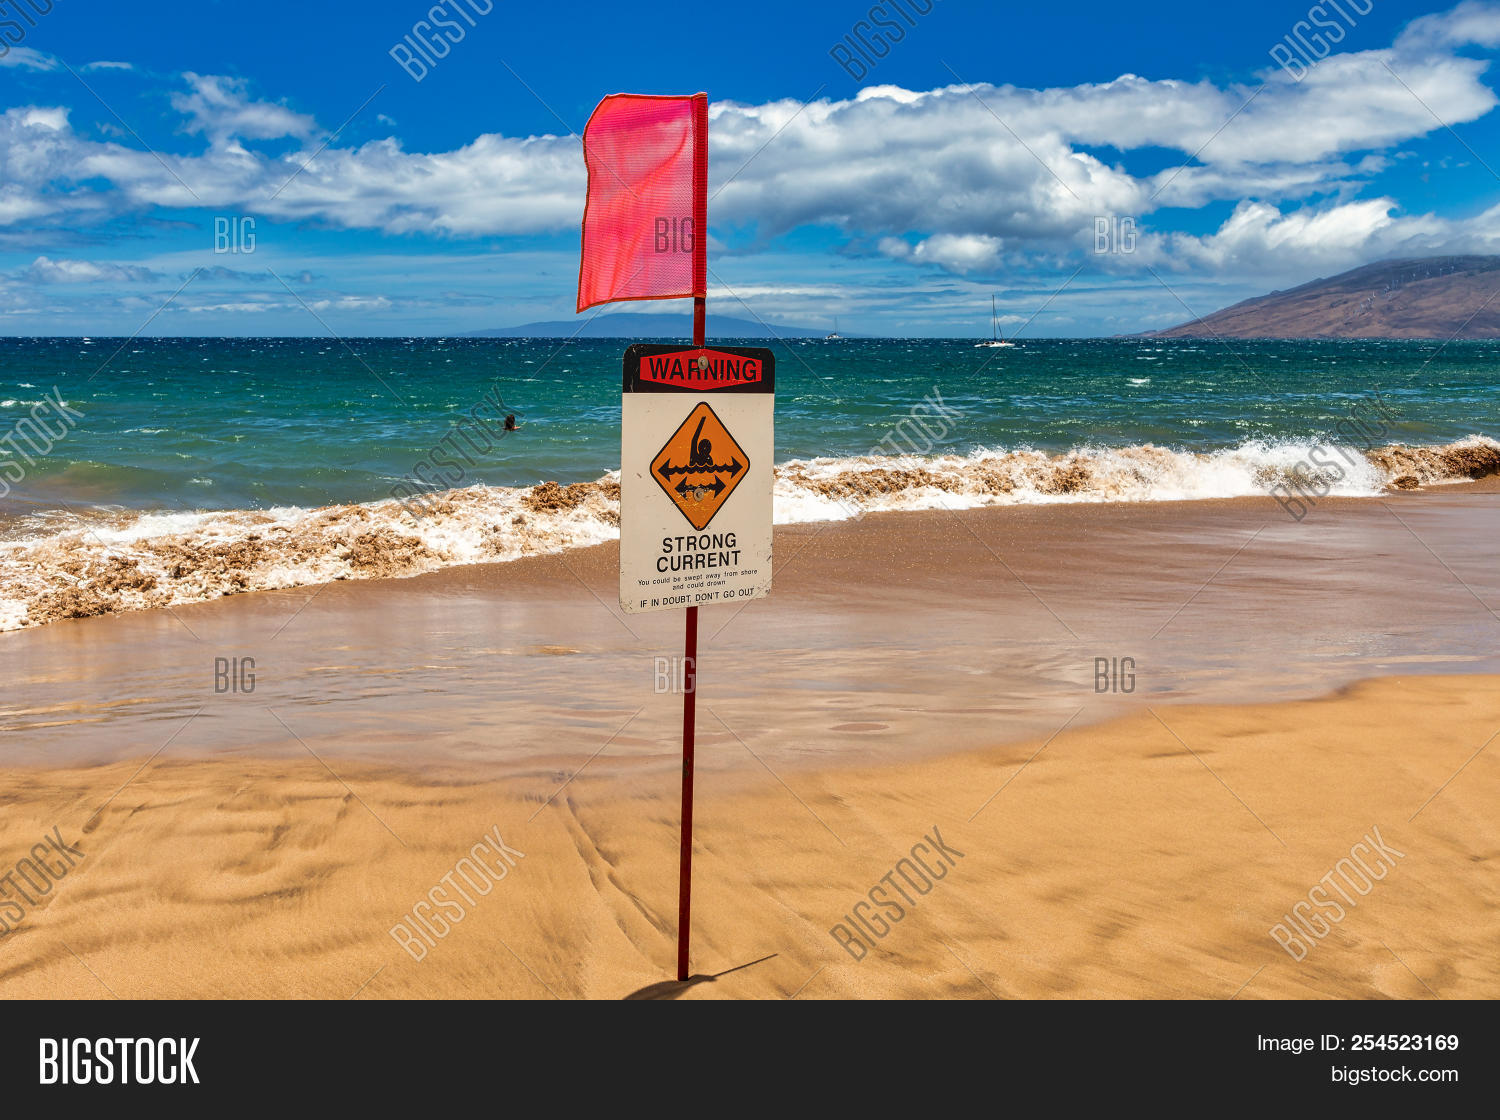 Warning Sign On Beach Image & Photo (Free Trial) | Bigstock